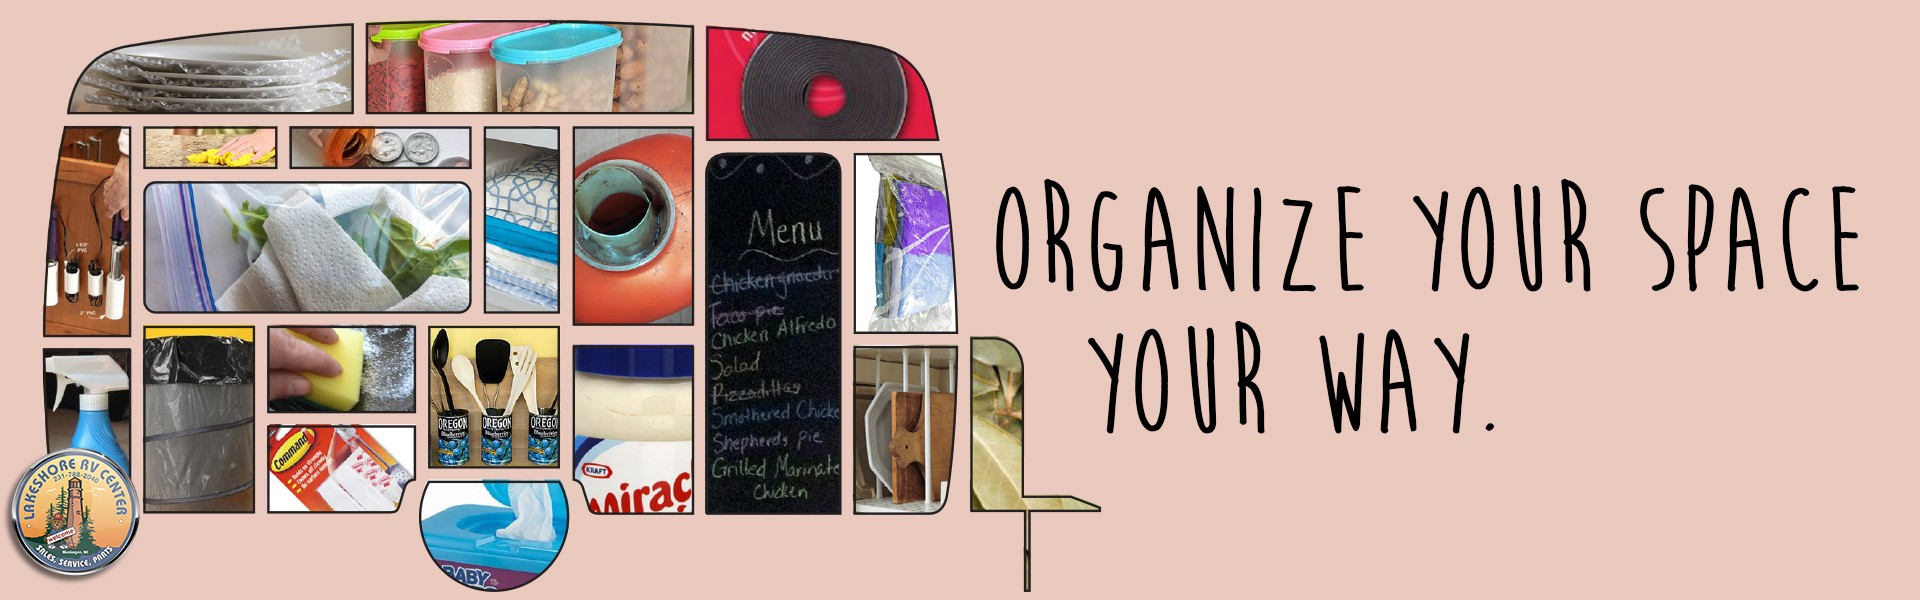 Organize your space, your way. 20 DIY Tips for organizing your RV.